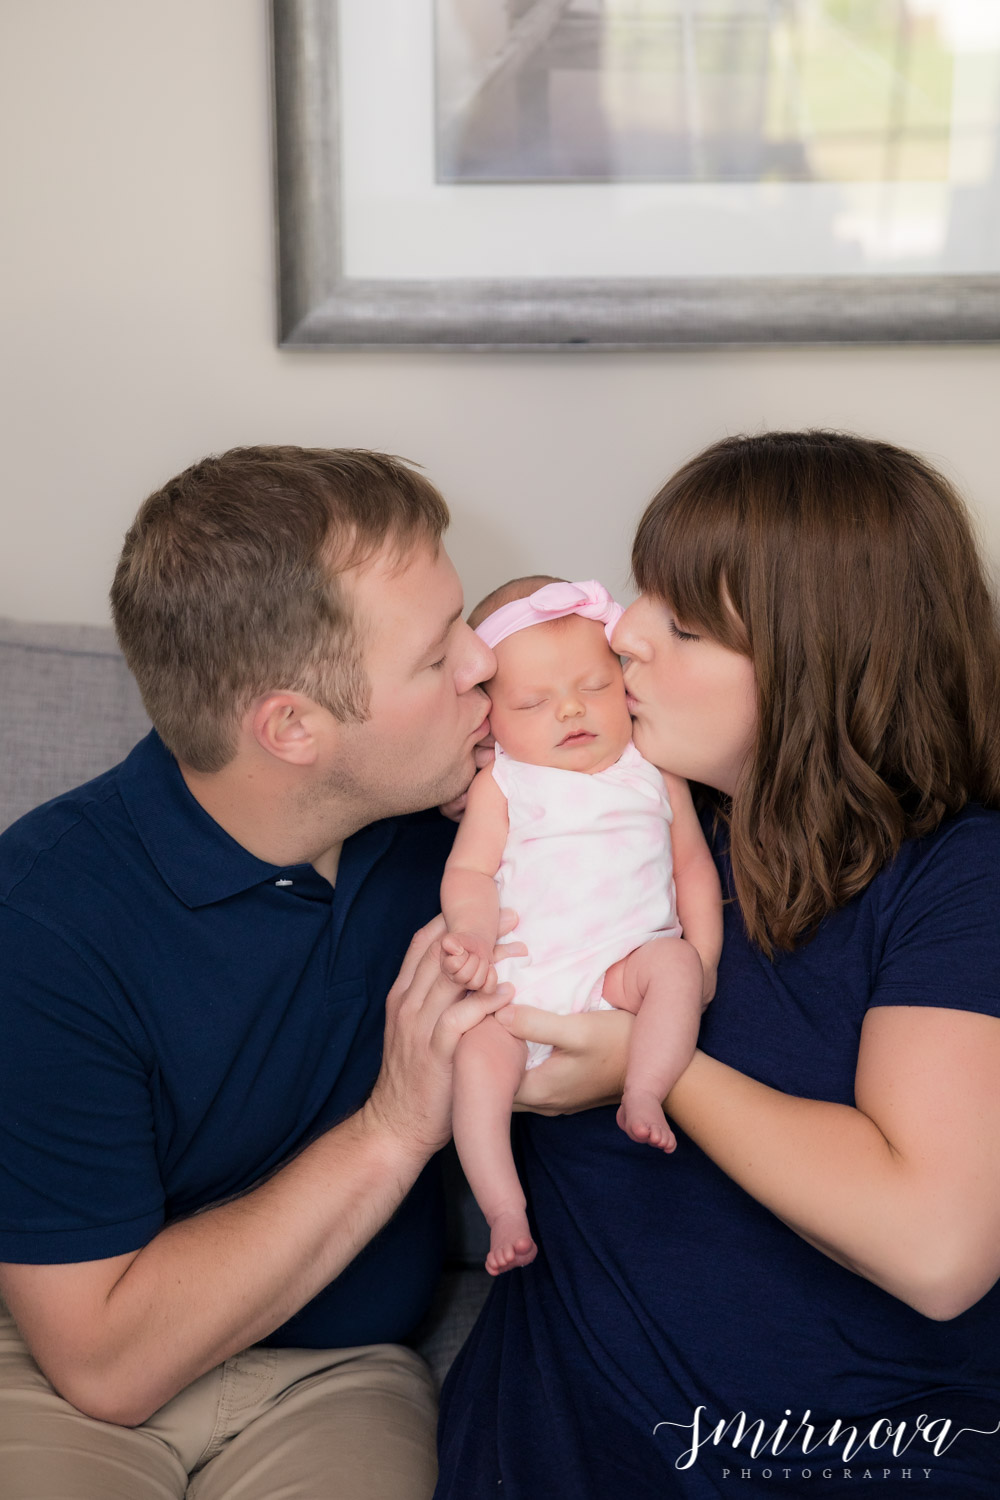 parents and baby girl Smirnova Photography by Alyssa